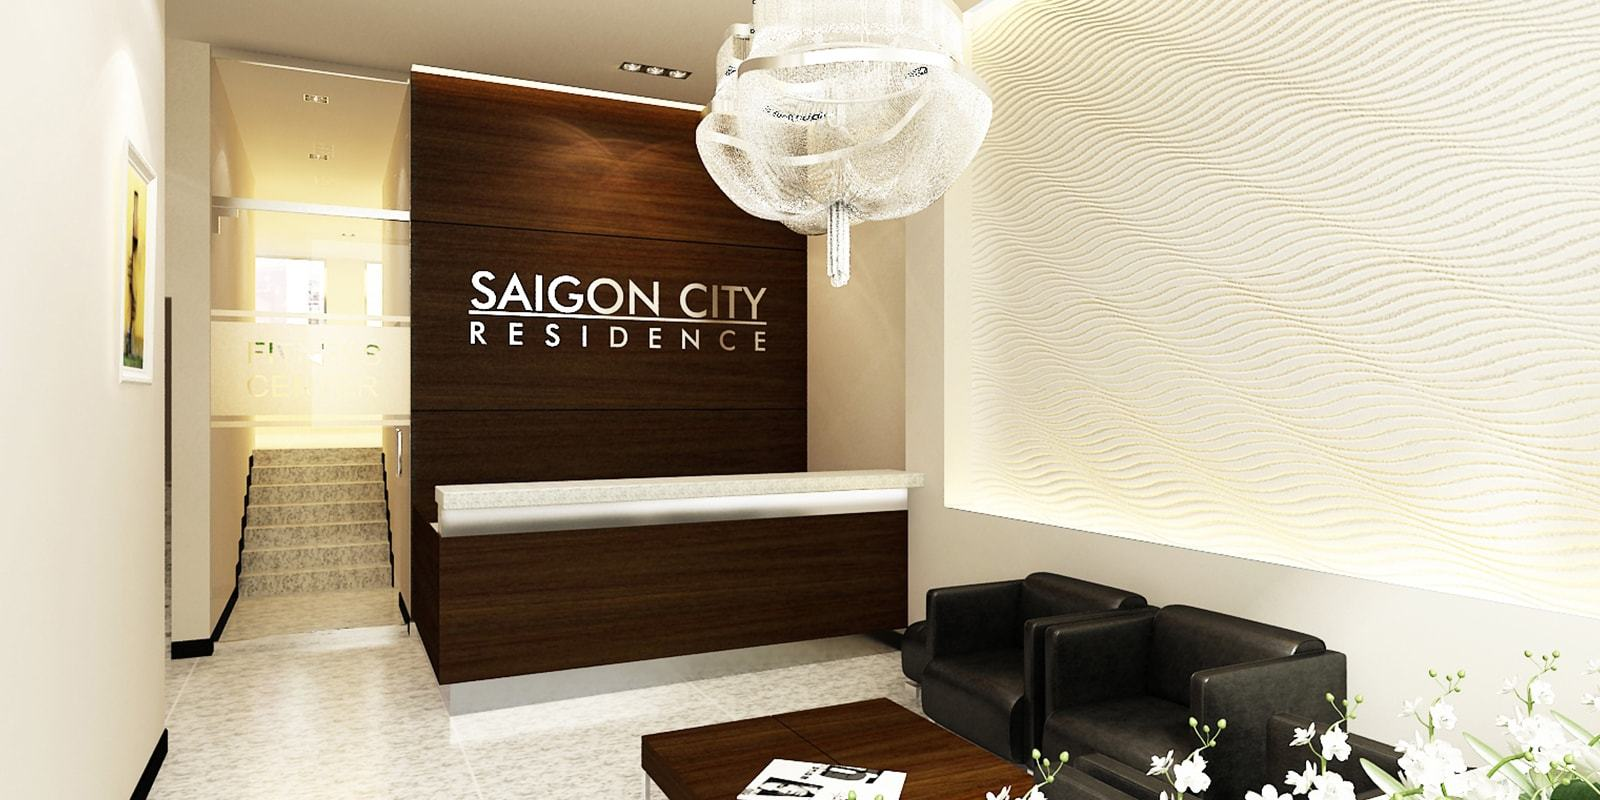 Saigon City Residence Hero